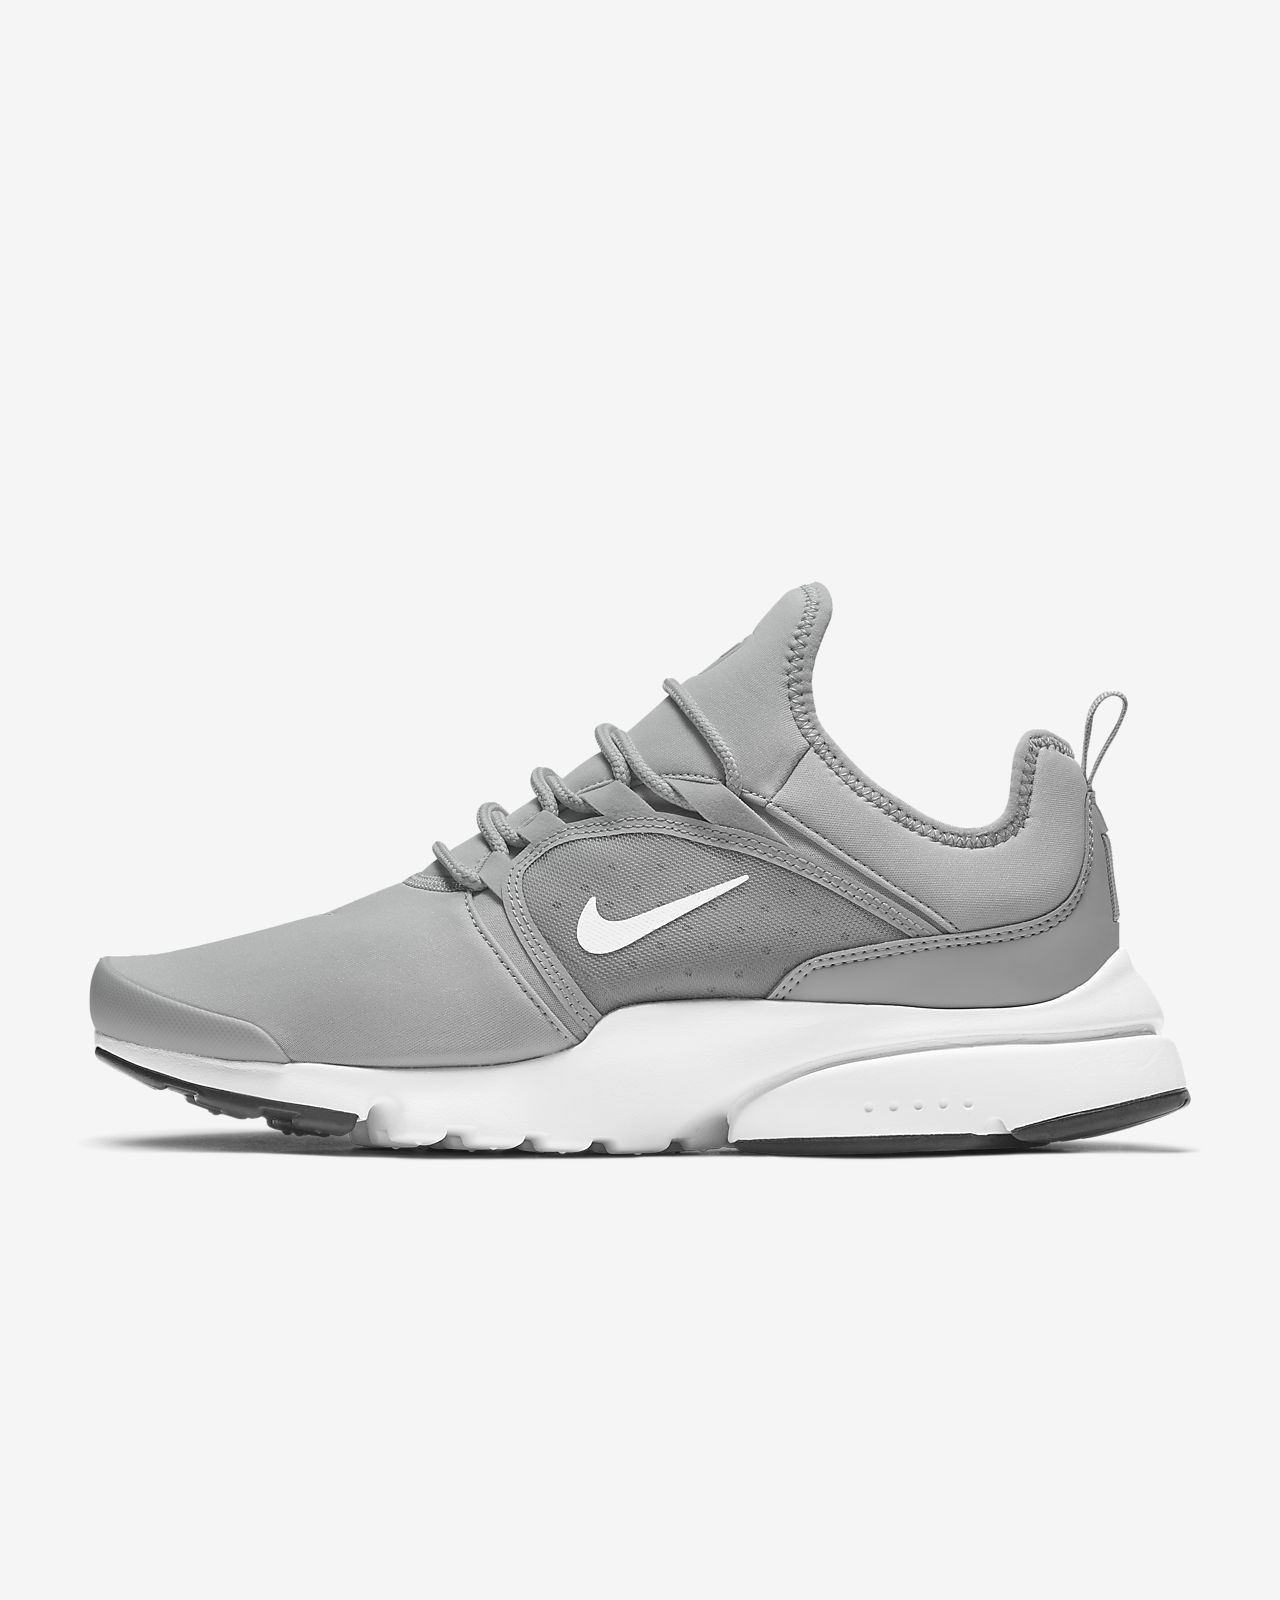 c854bf99441c Nike Presto Fly World Men s Shoe. Nike.com NL